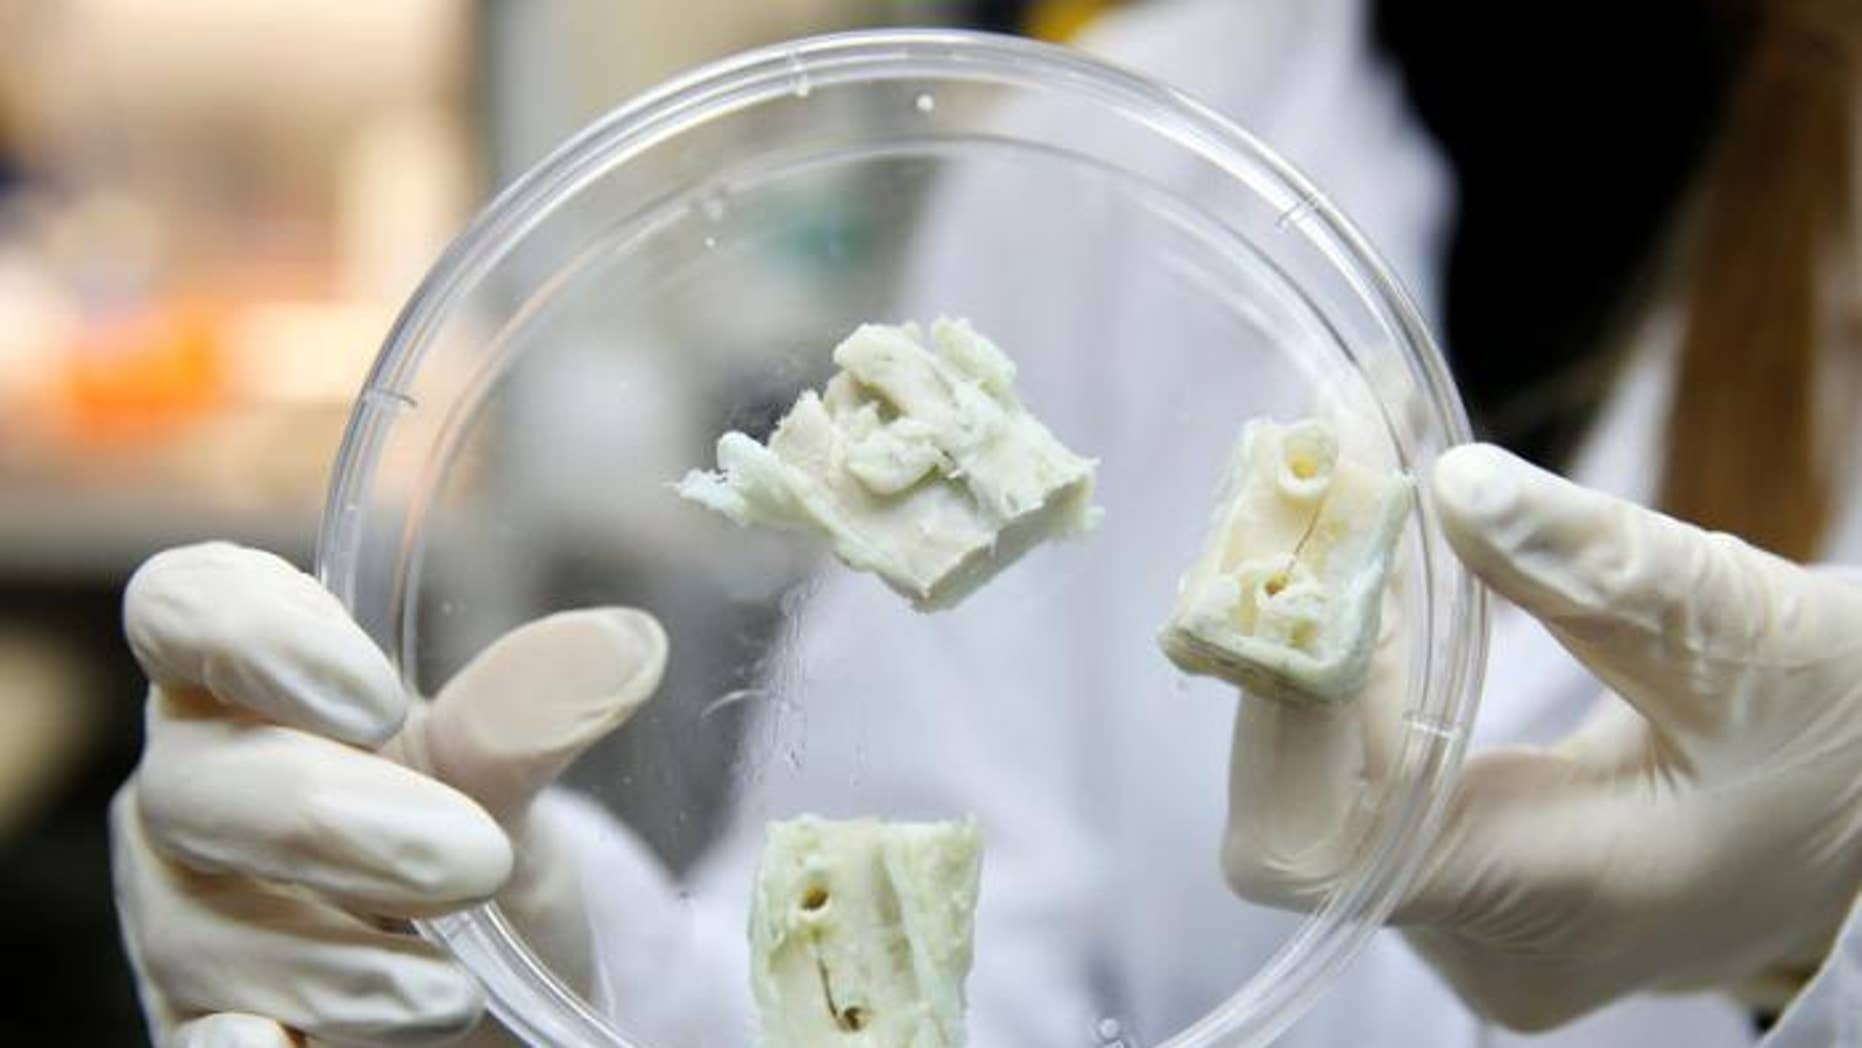 Dec. 4, 2016: A researcher displays parts of a lab-grown, semi-liquid bone graft at the laboratory of Israeli biotech firm Bonus Biogroup in Haifa, Israel.